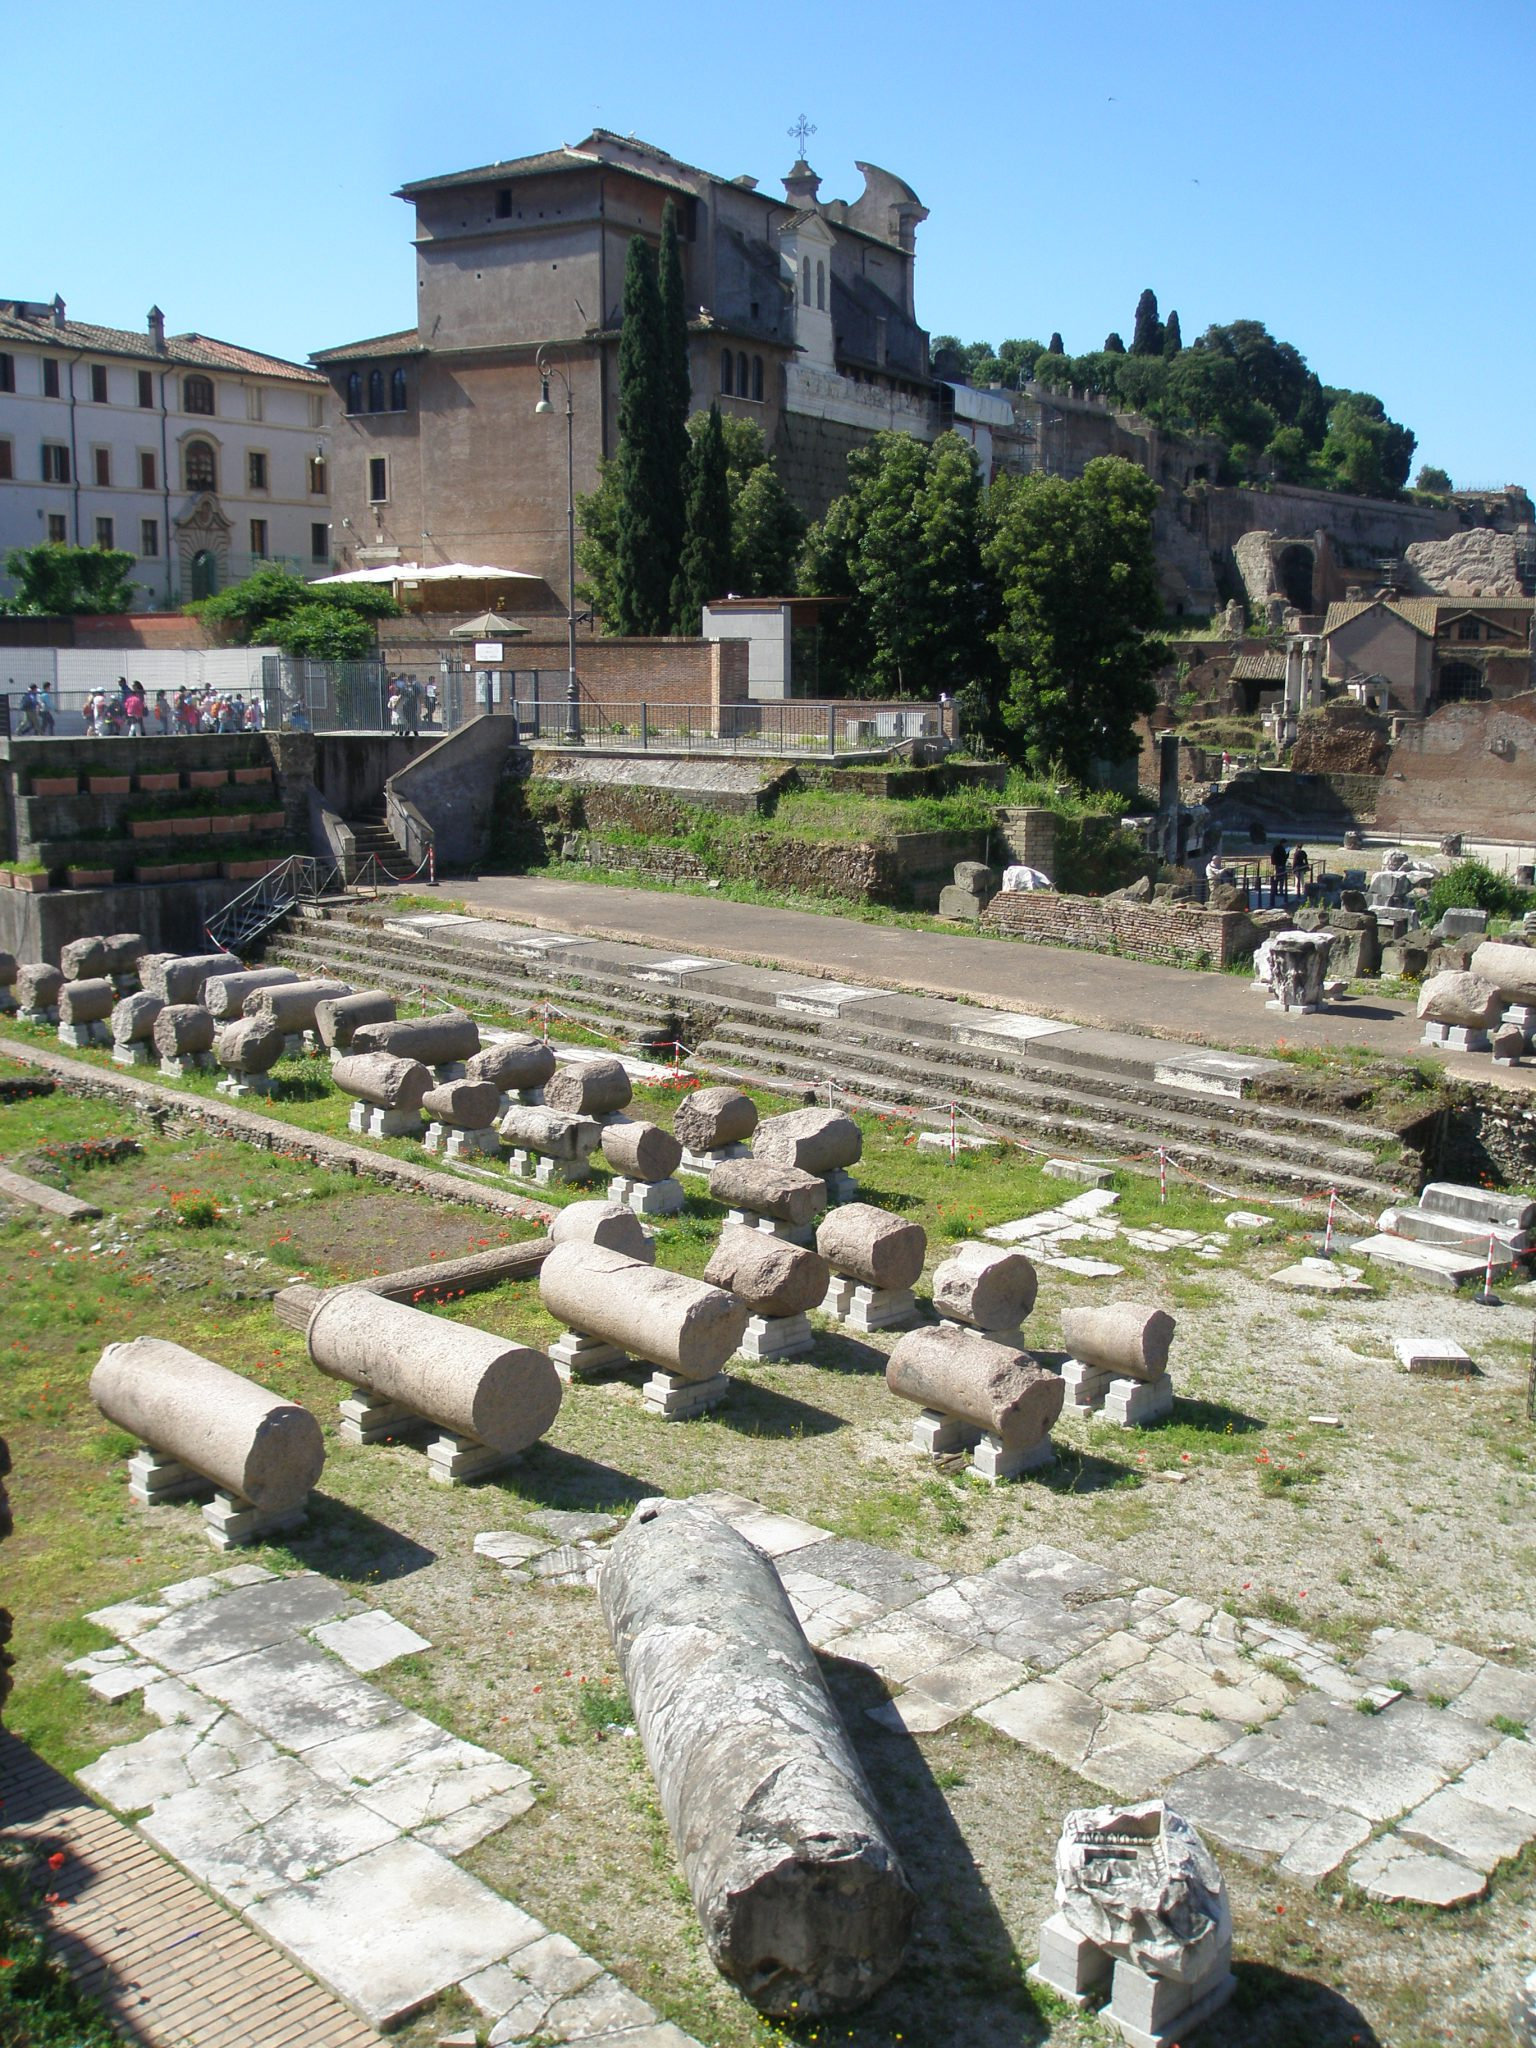 A closer look of column fragments from the Basilica Aemilia, as seen from Via del Fori Imperiali.